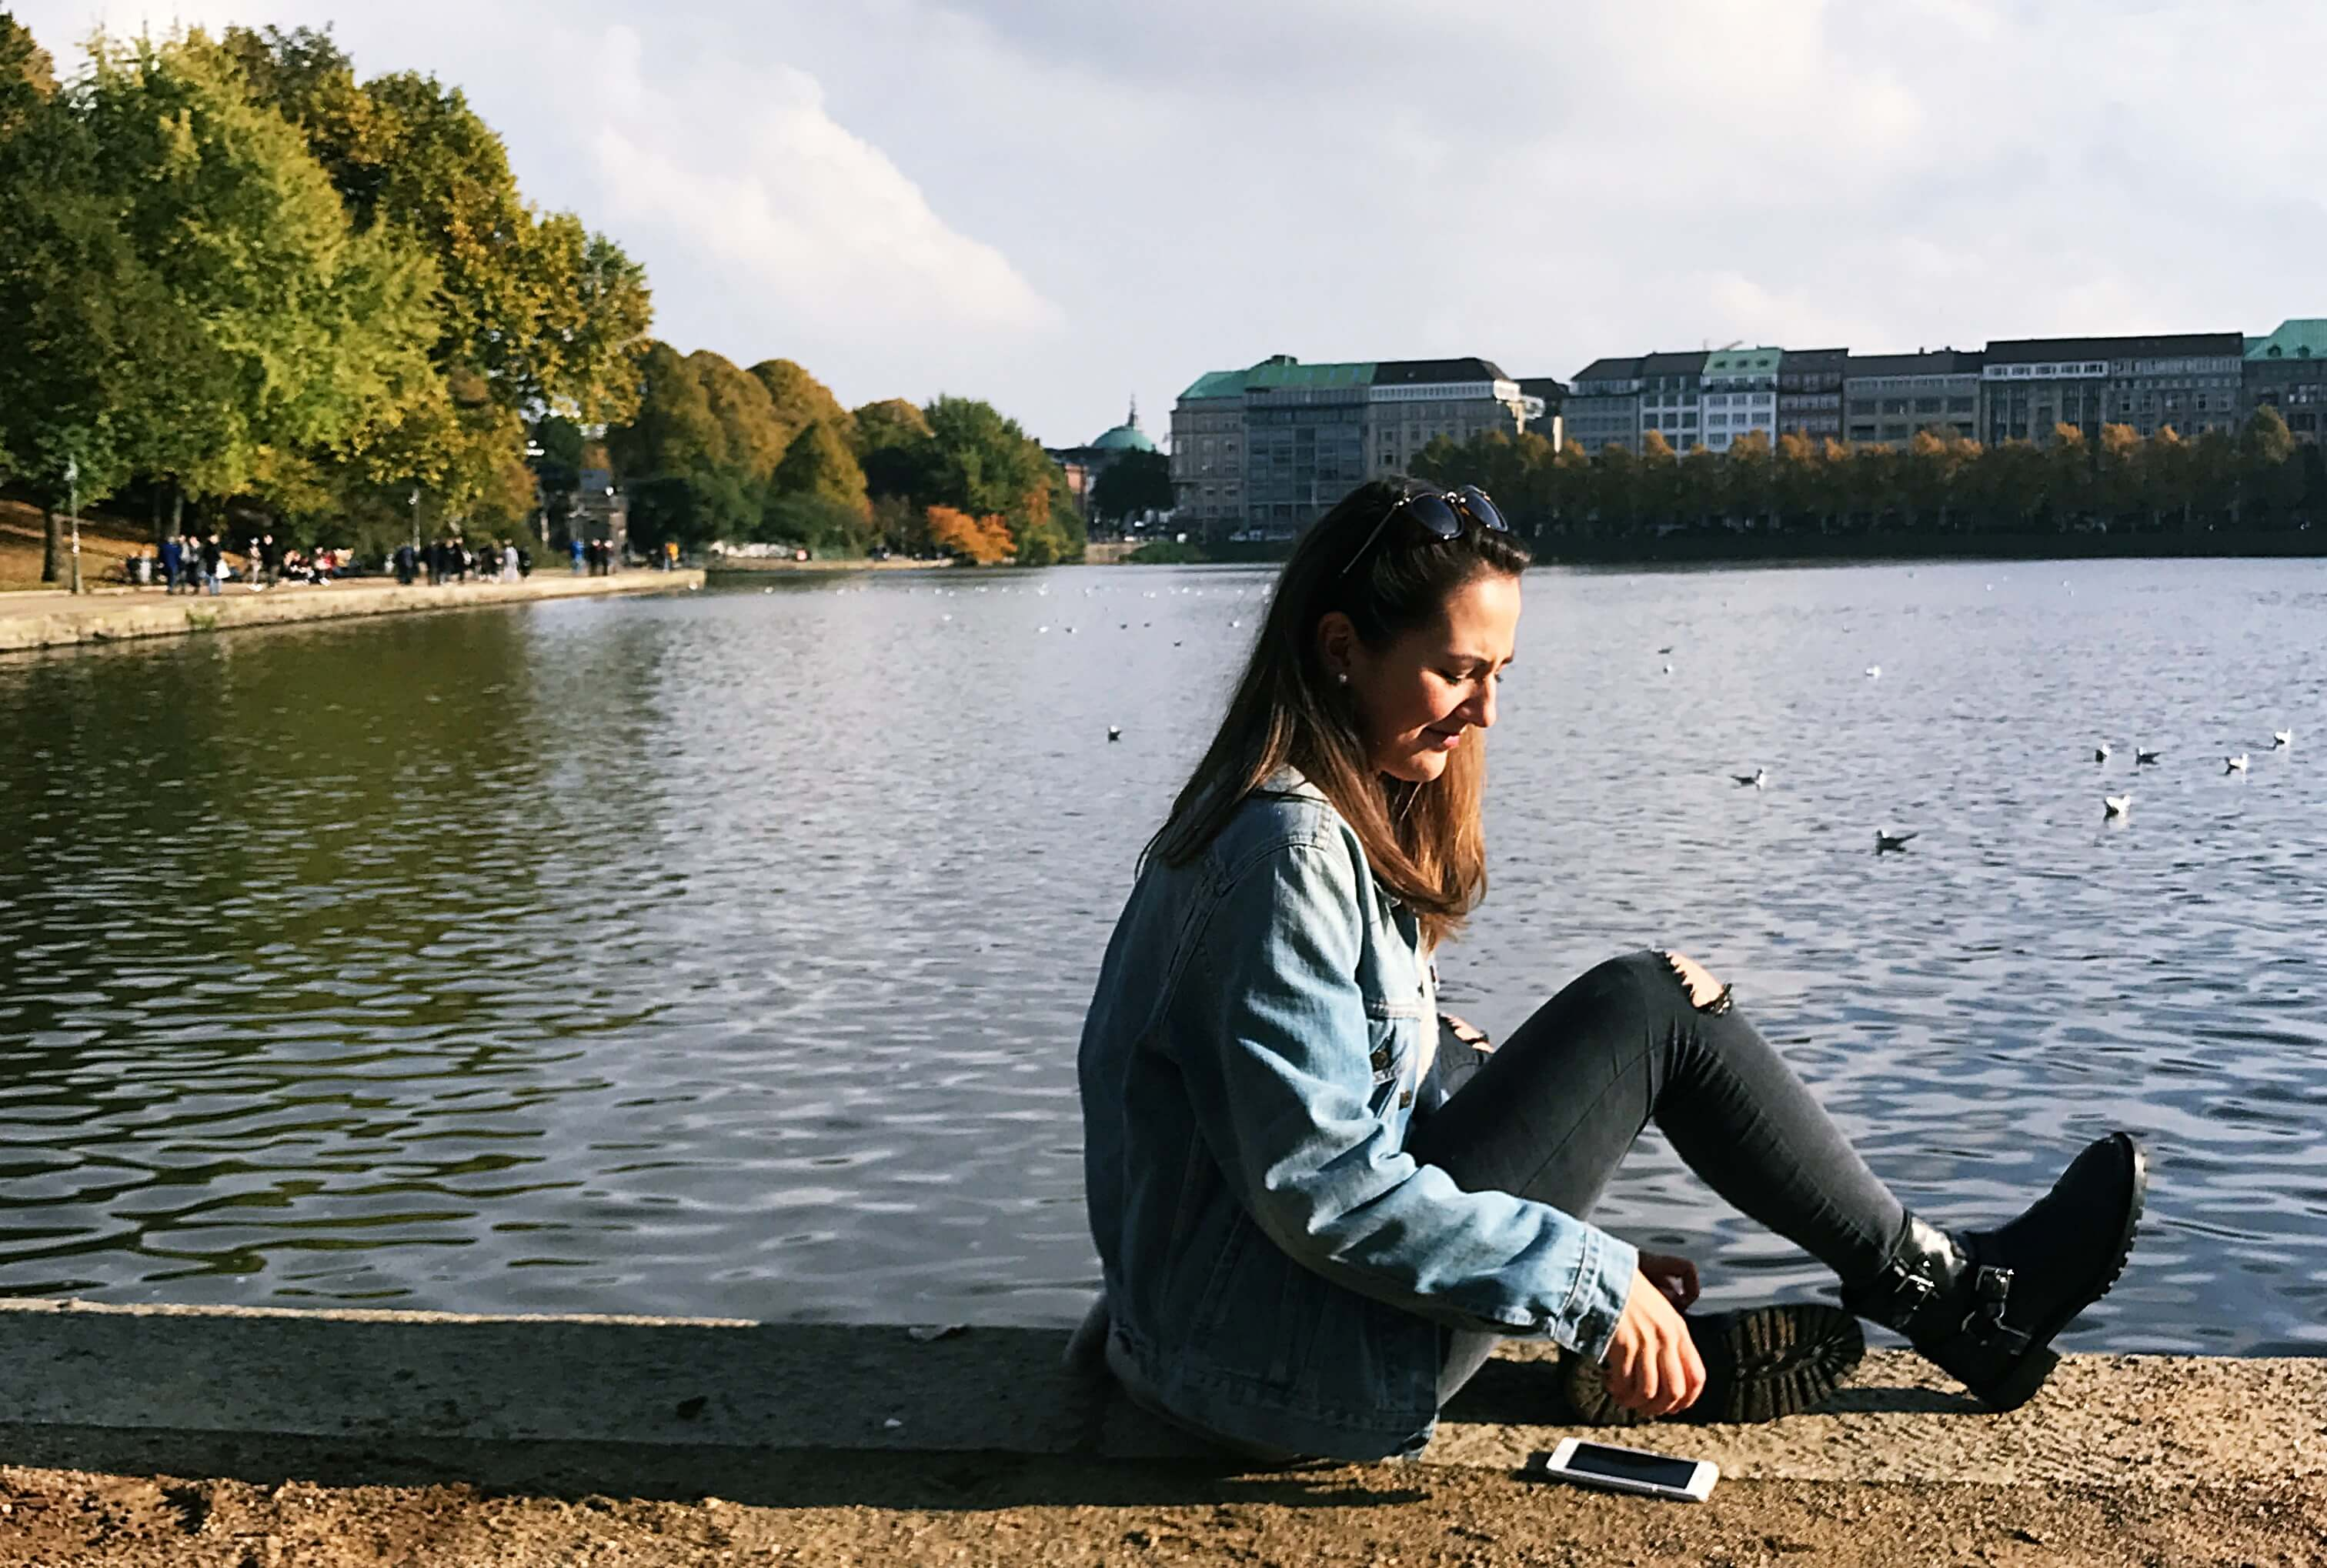 hamburg-binnenalster-diana-scholl-fithealthydi-outfit-levis